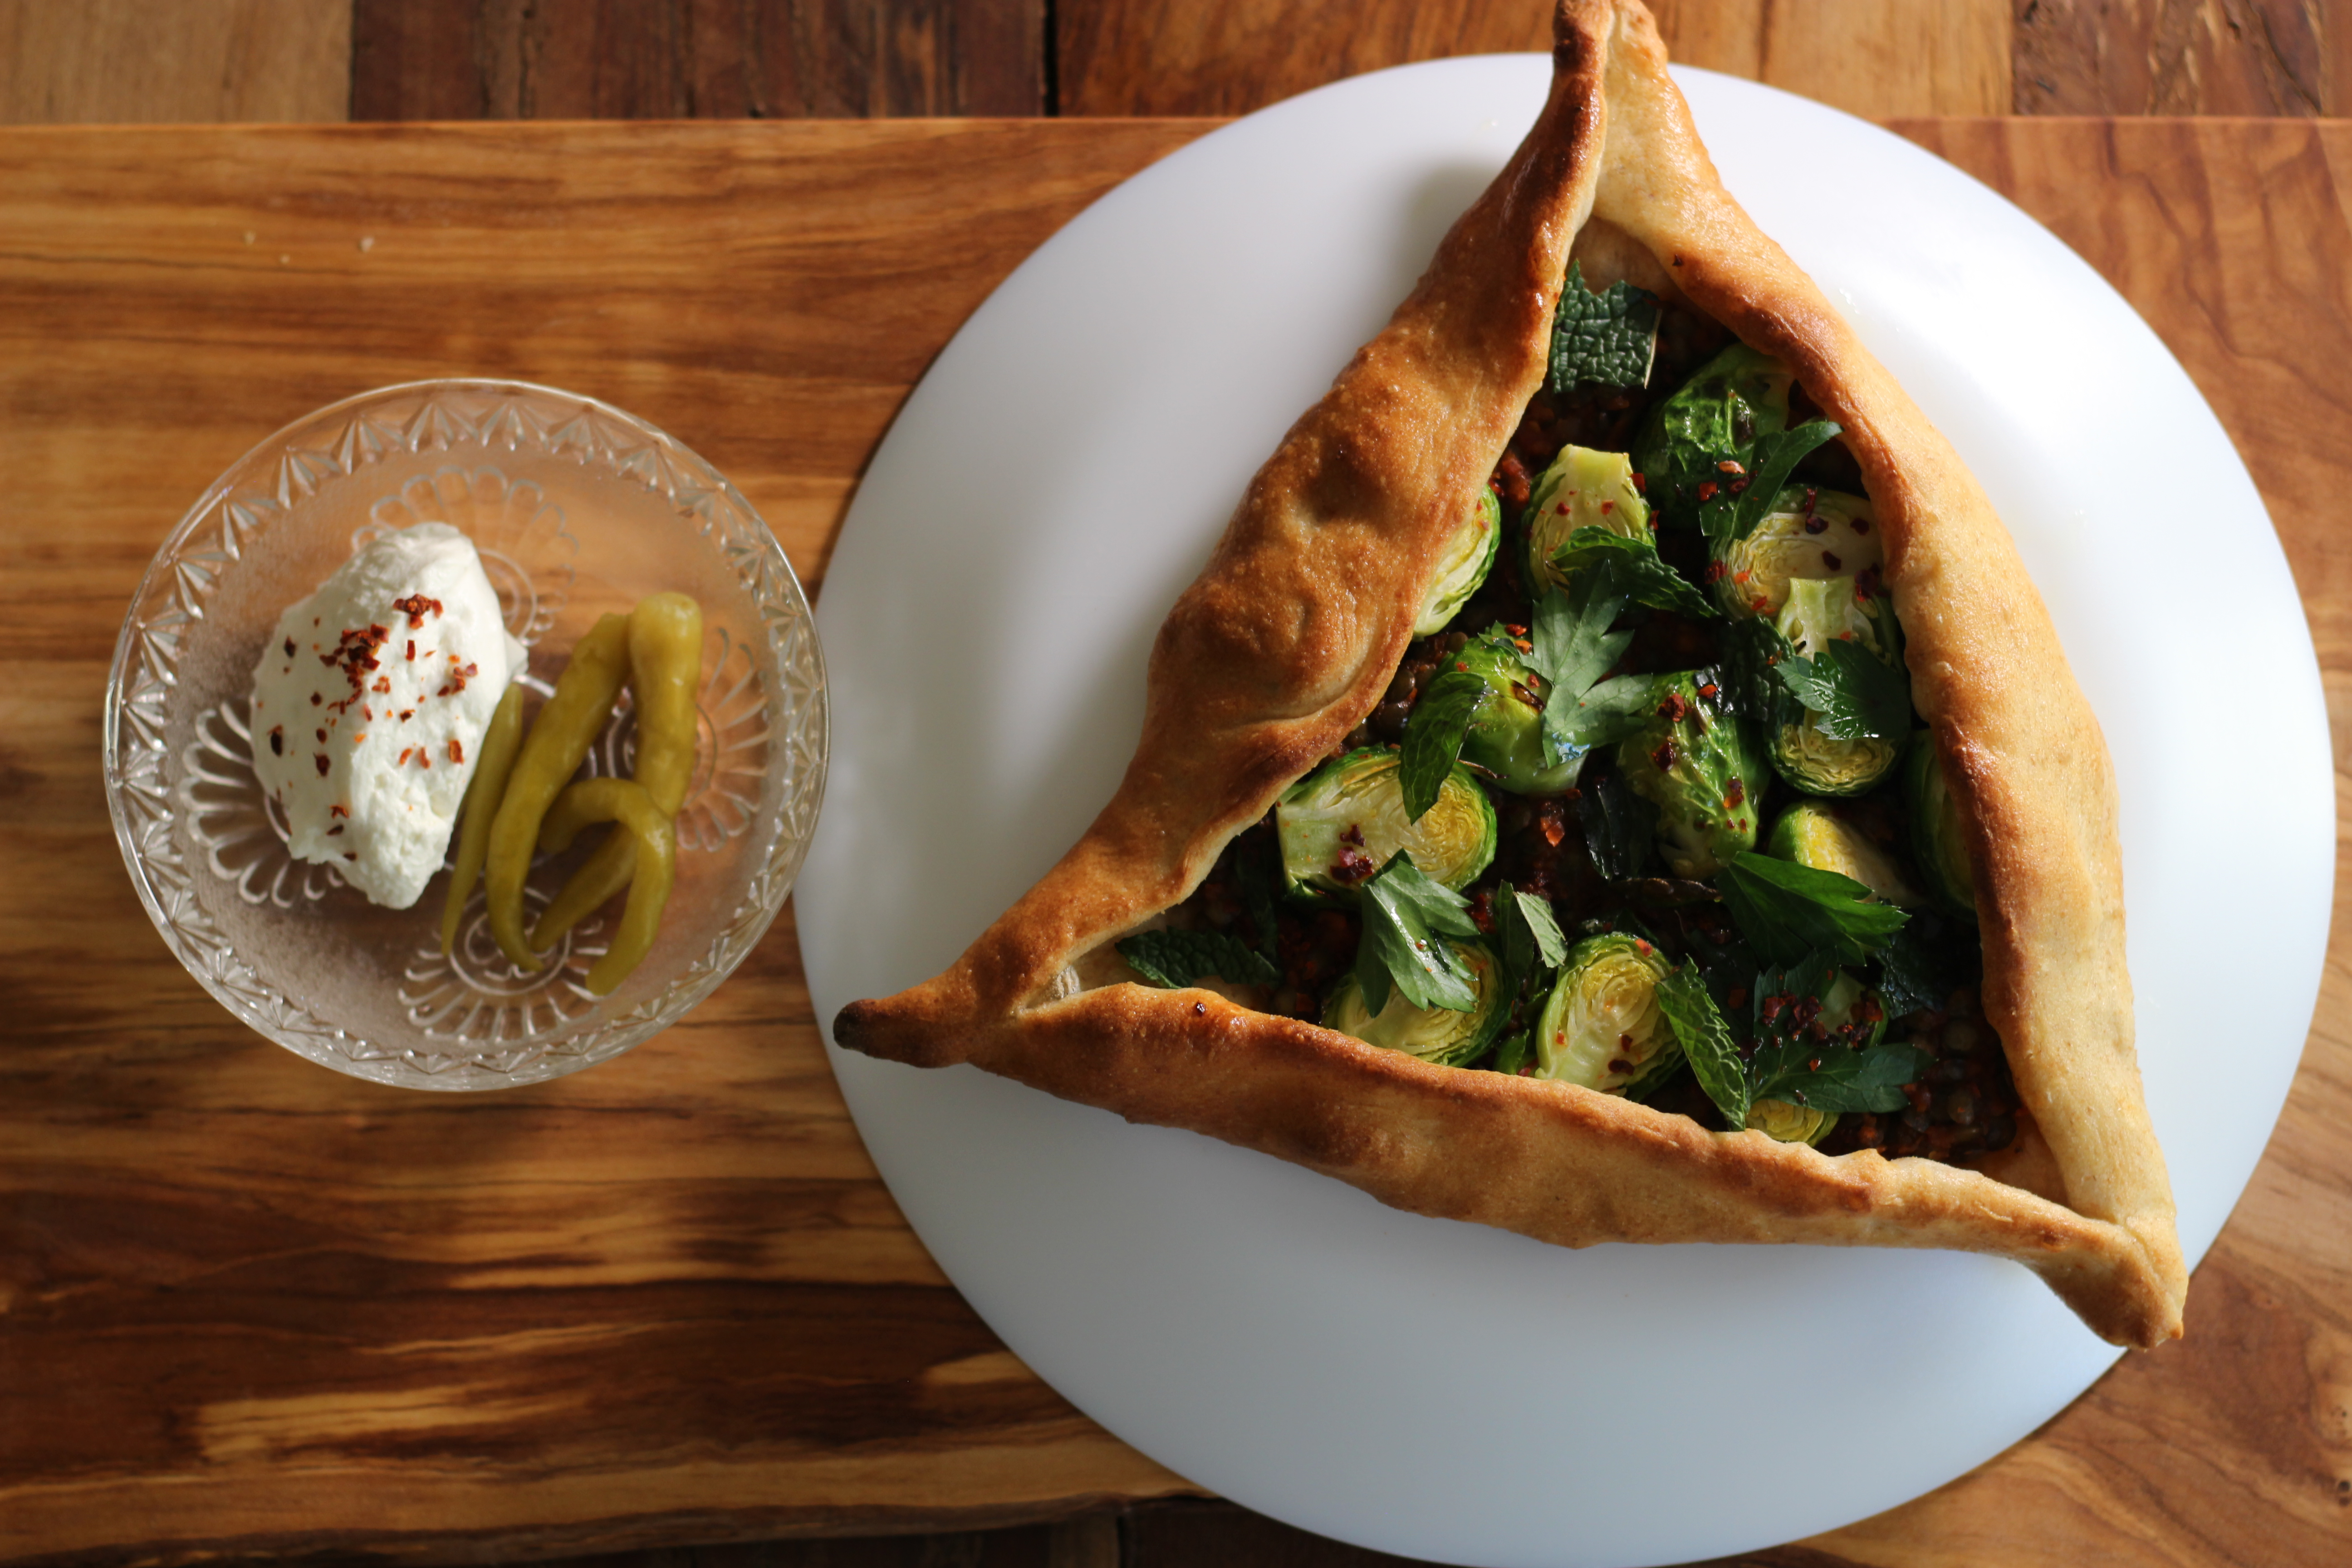 Overhead view of a triangular hand pie stuffed with Brussels sprouts. On the side, there's a small clear bowl with a scoop of a thick white sauce and a pickled garnish.